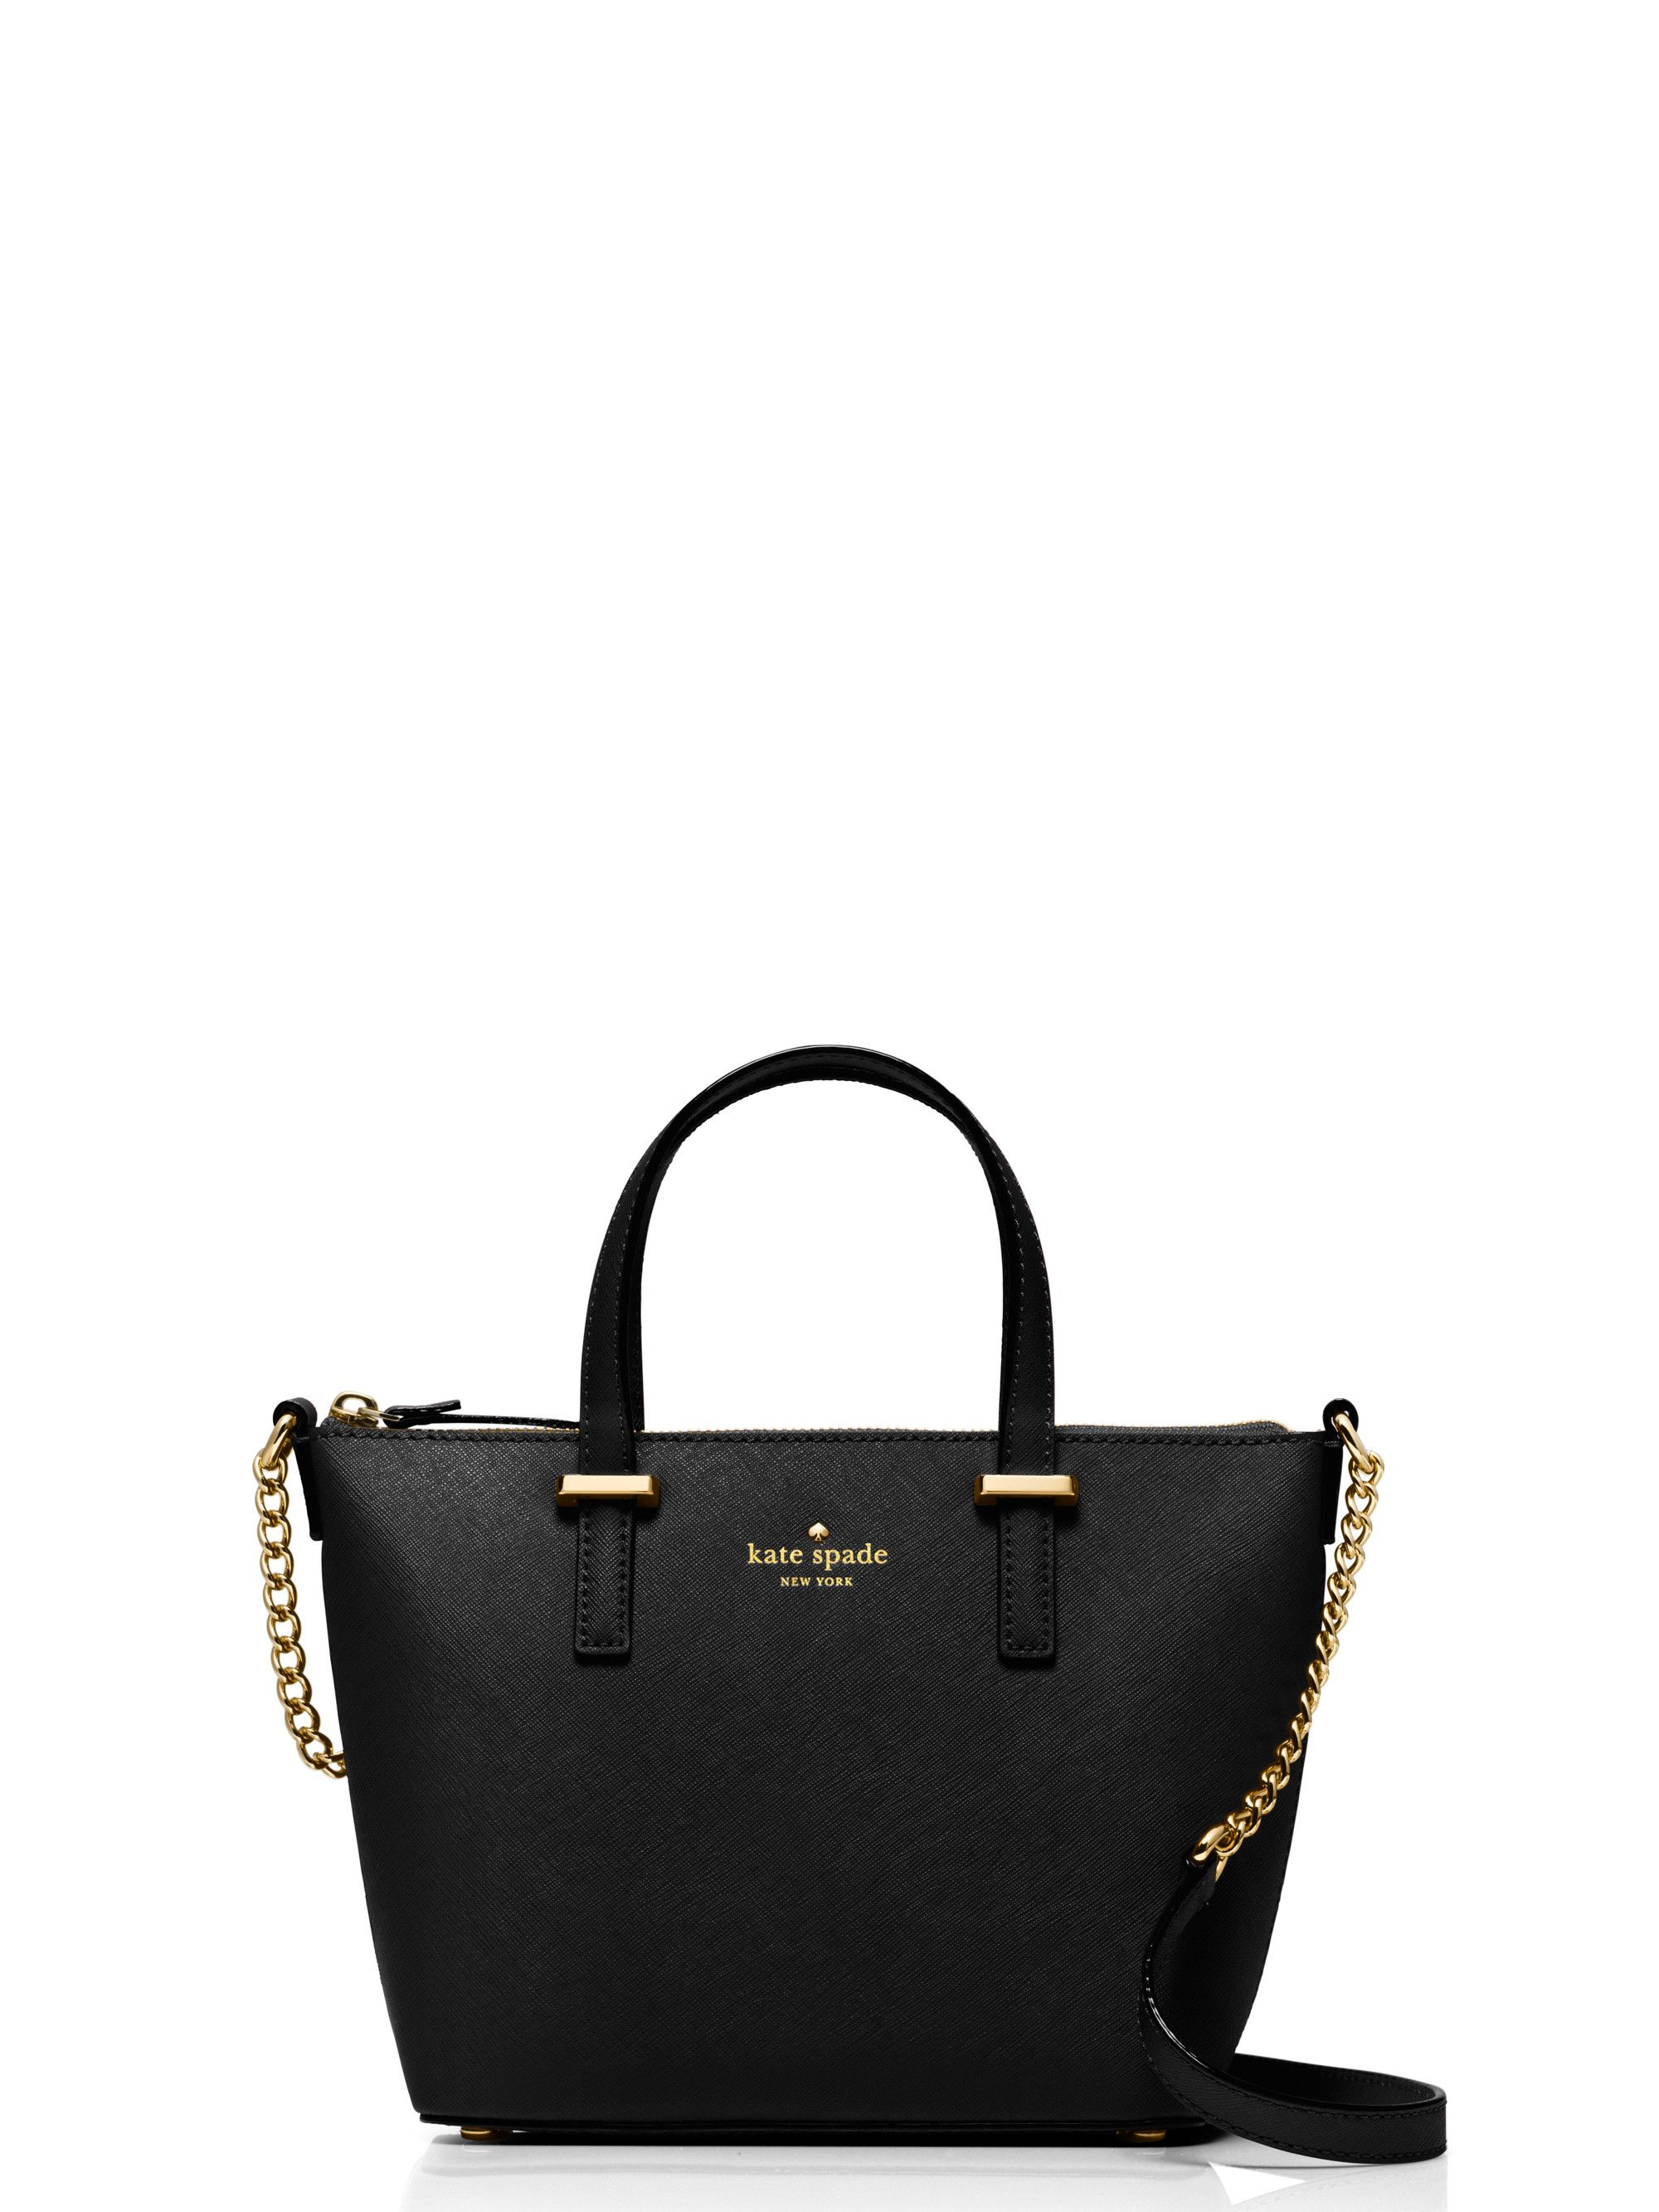 3fe5e3647 Kate Spade: Cedar Street Harmony Crossbody - Black | Miscellaneous ...